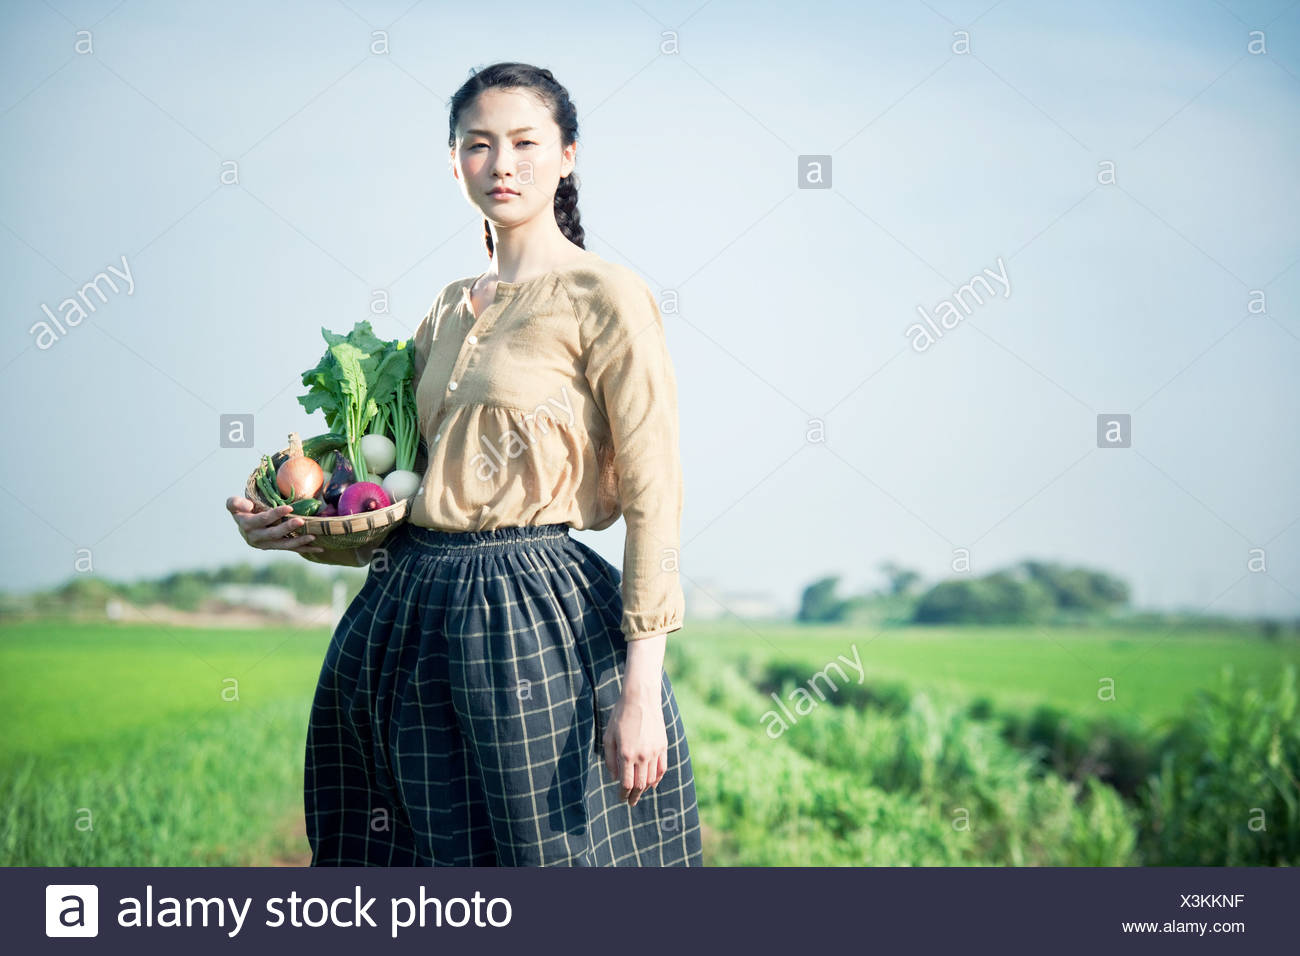 Young woman in field holding basket of homegrown vegetables - Stock Image